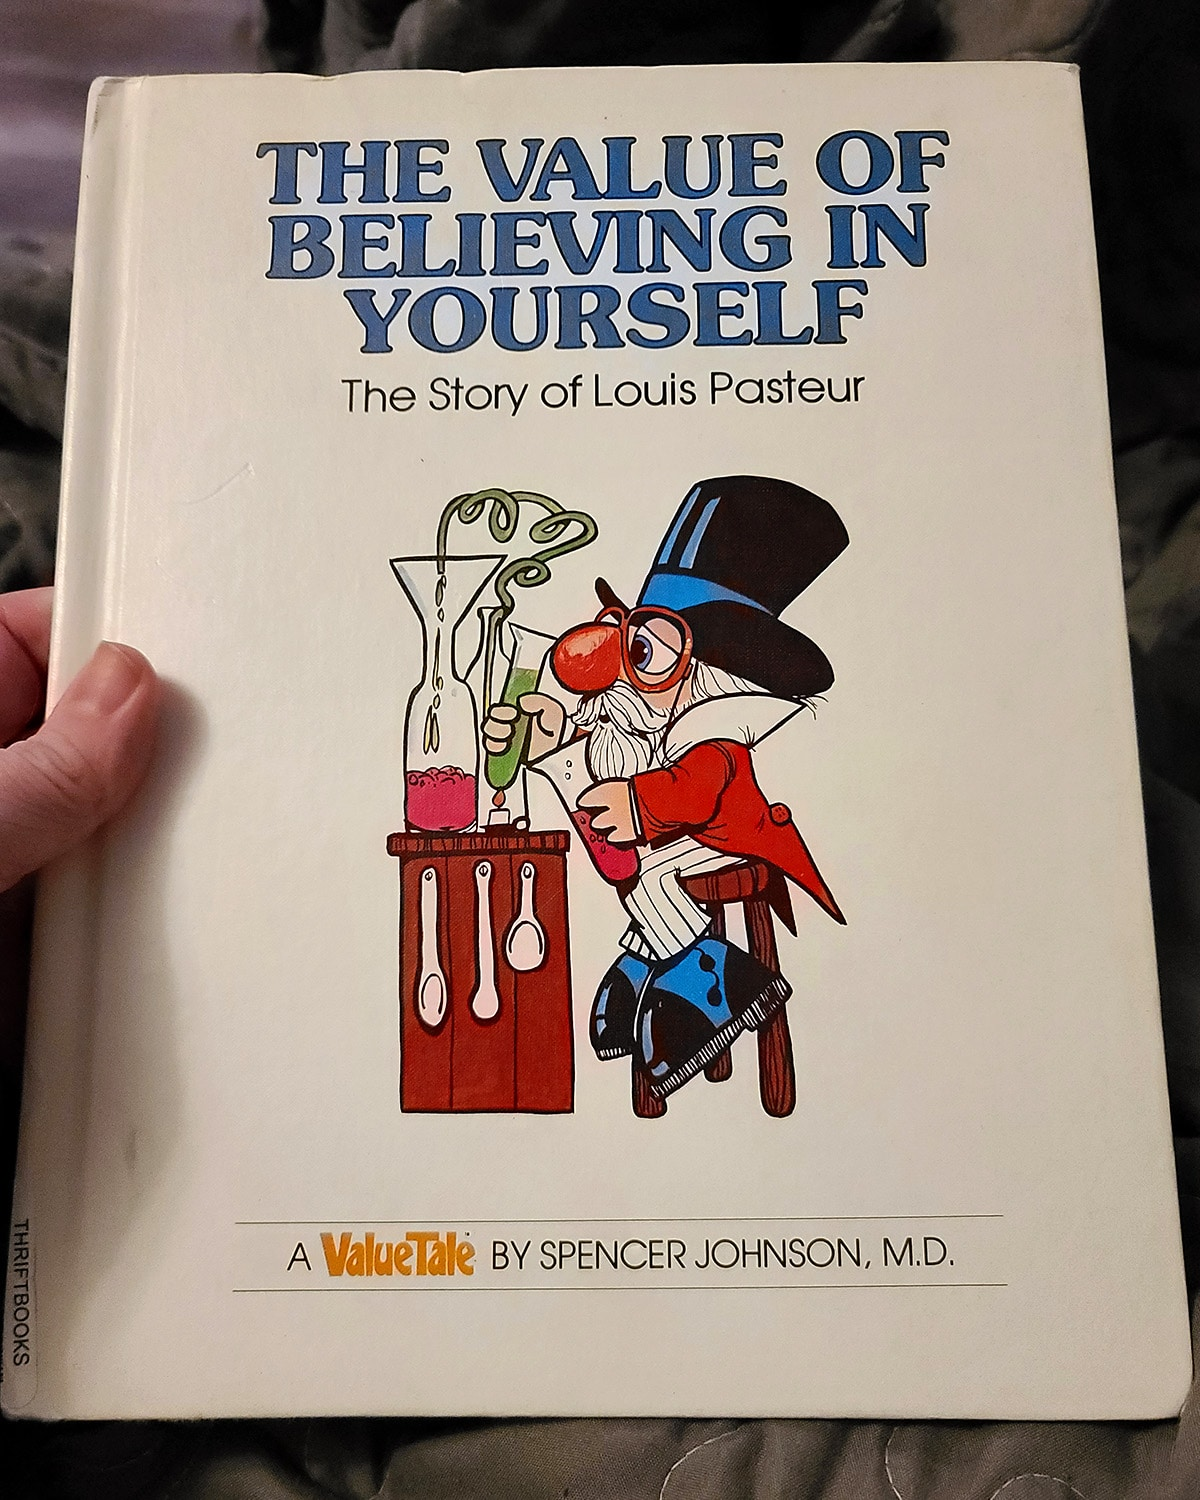 A hand holds up a copy of The Value of Believing in Yourself: The Story of Louis Pasteur.